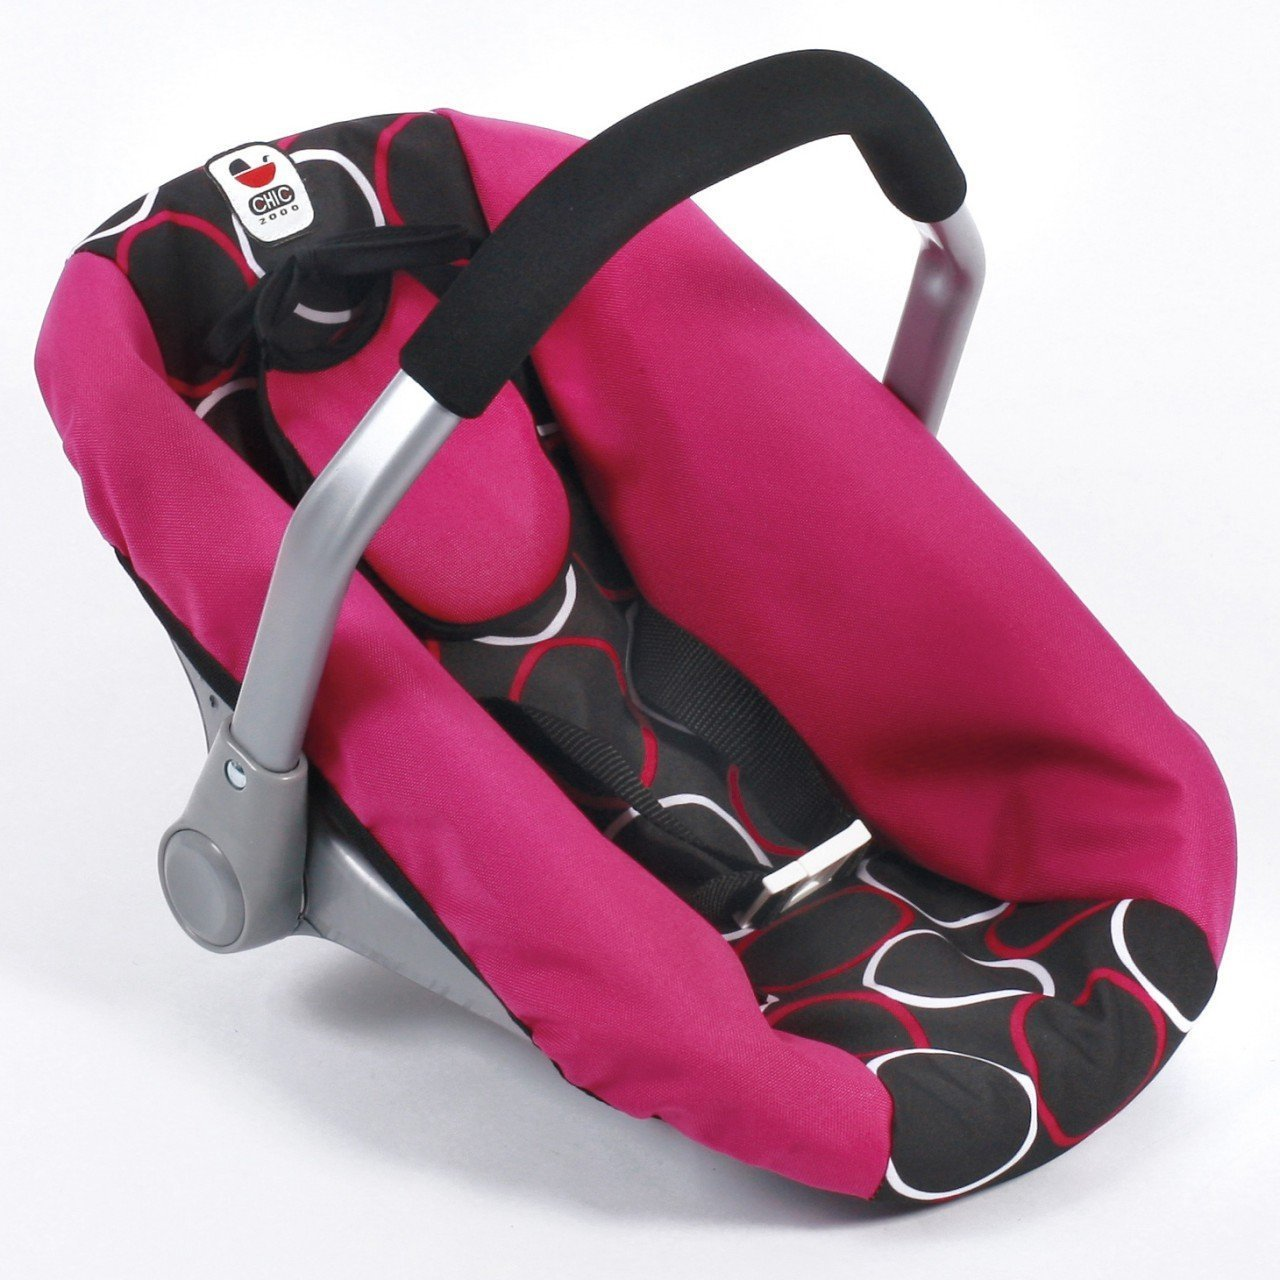 Dolls Car Seat Carrier Bayer Dolls Car Seat Baby